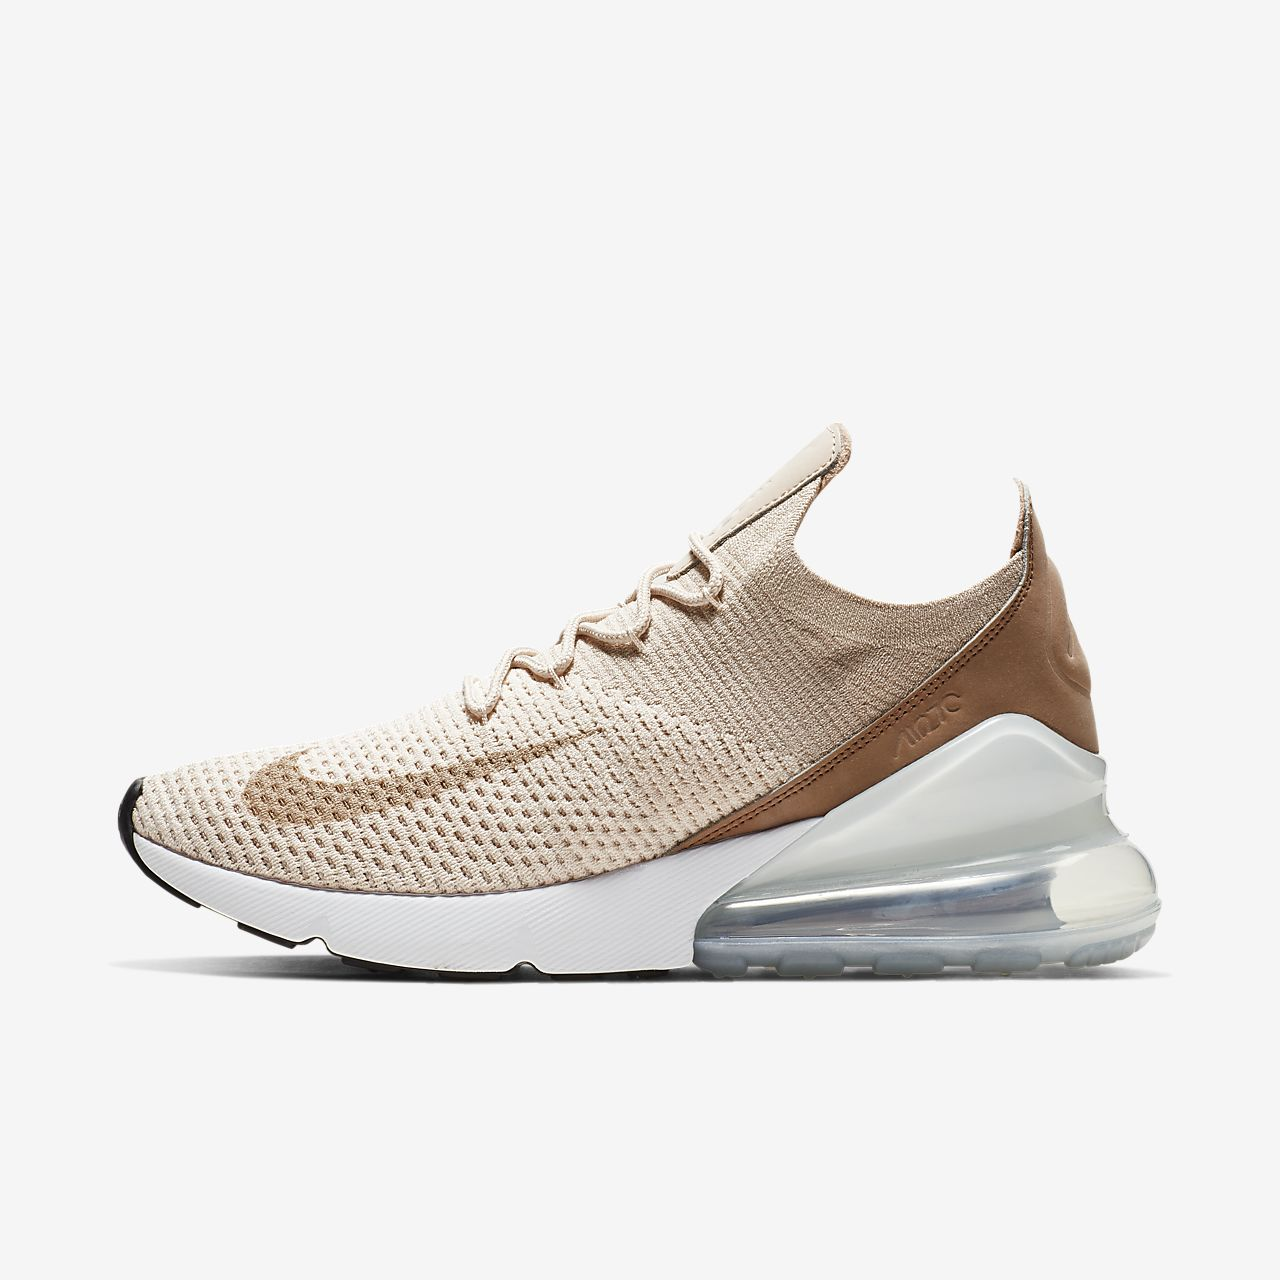 8775106142 Cheap Nike Air Max 270 White Shoes for Sale 2018